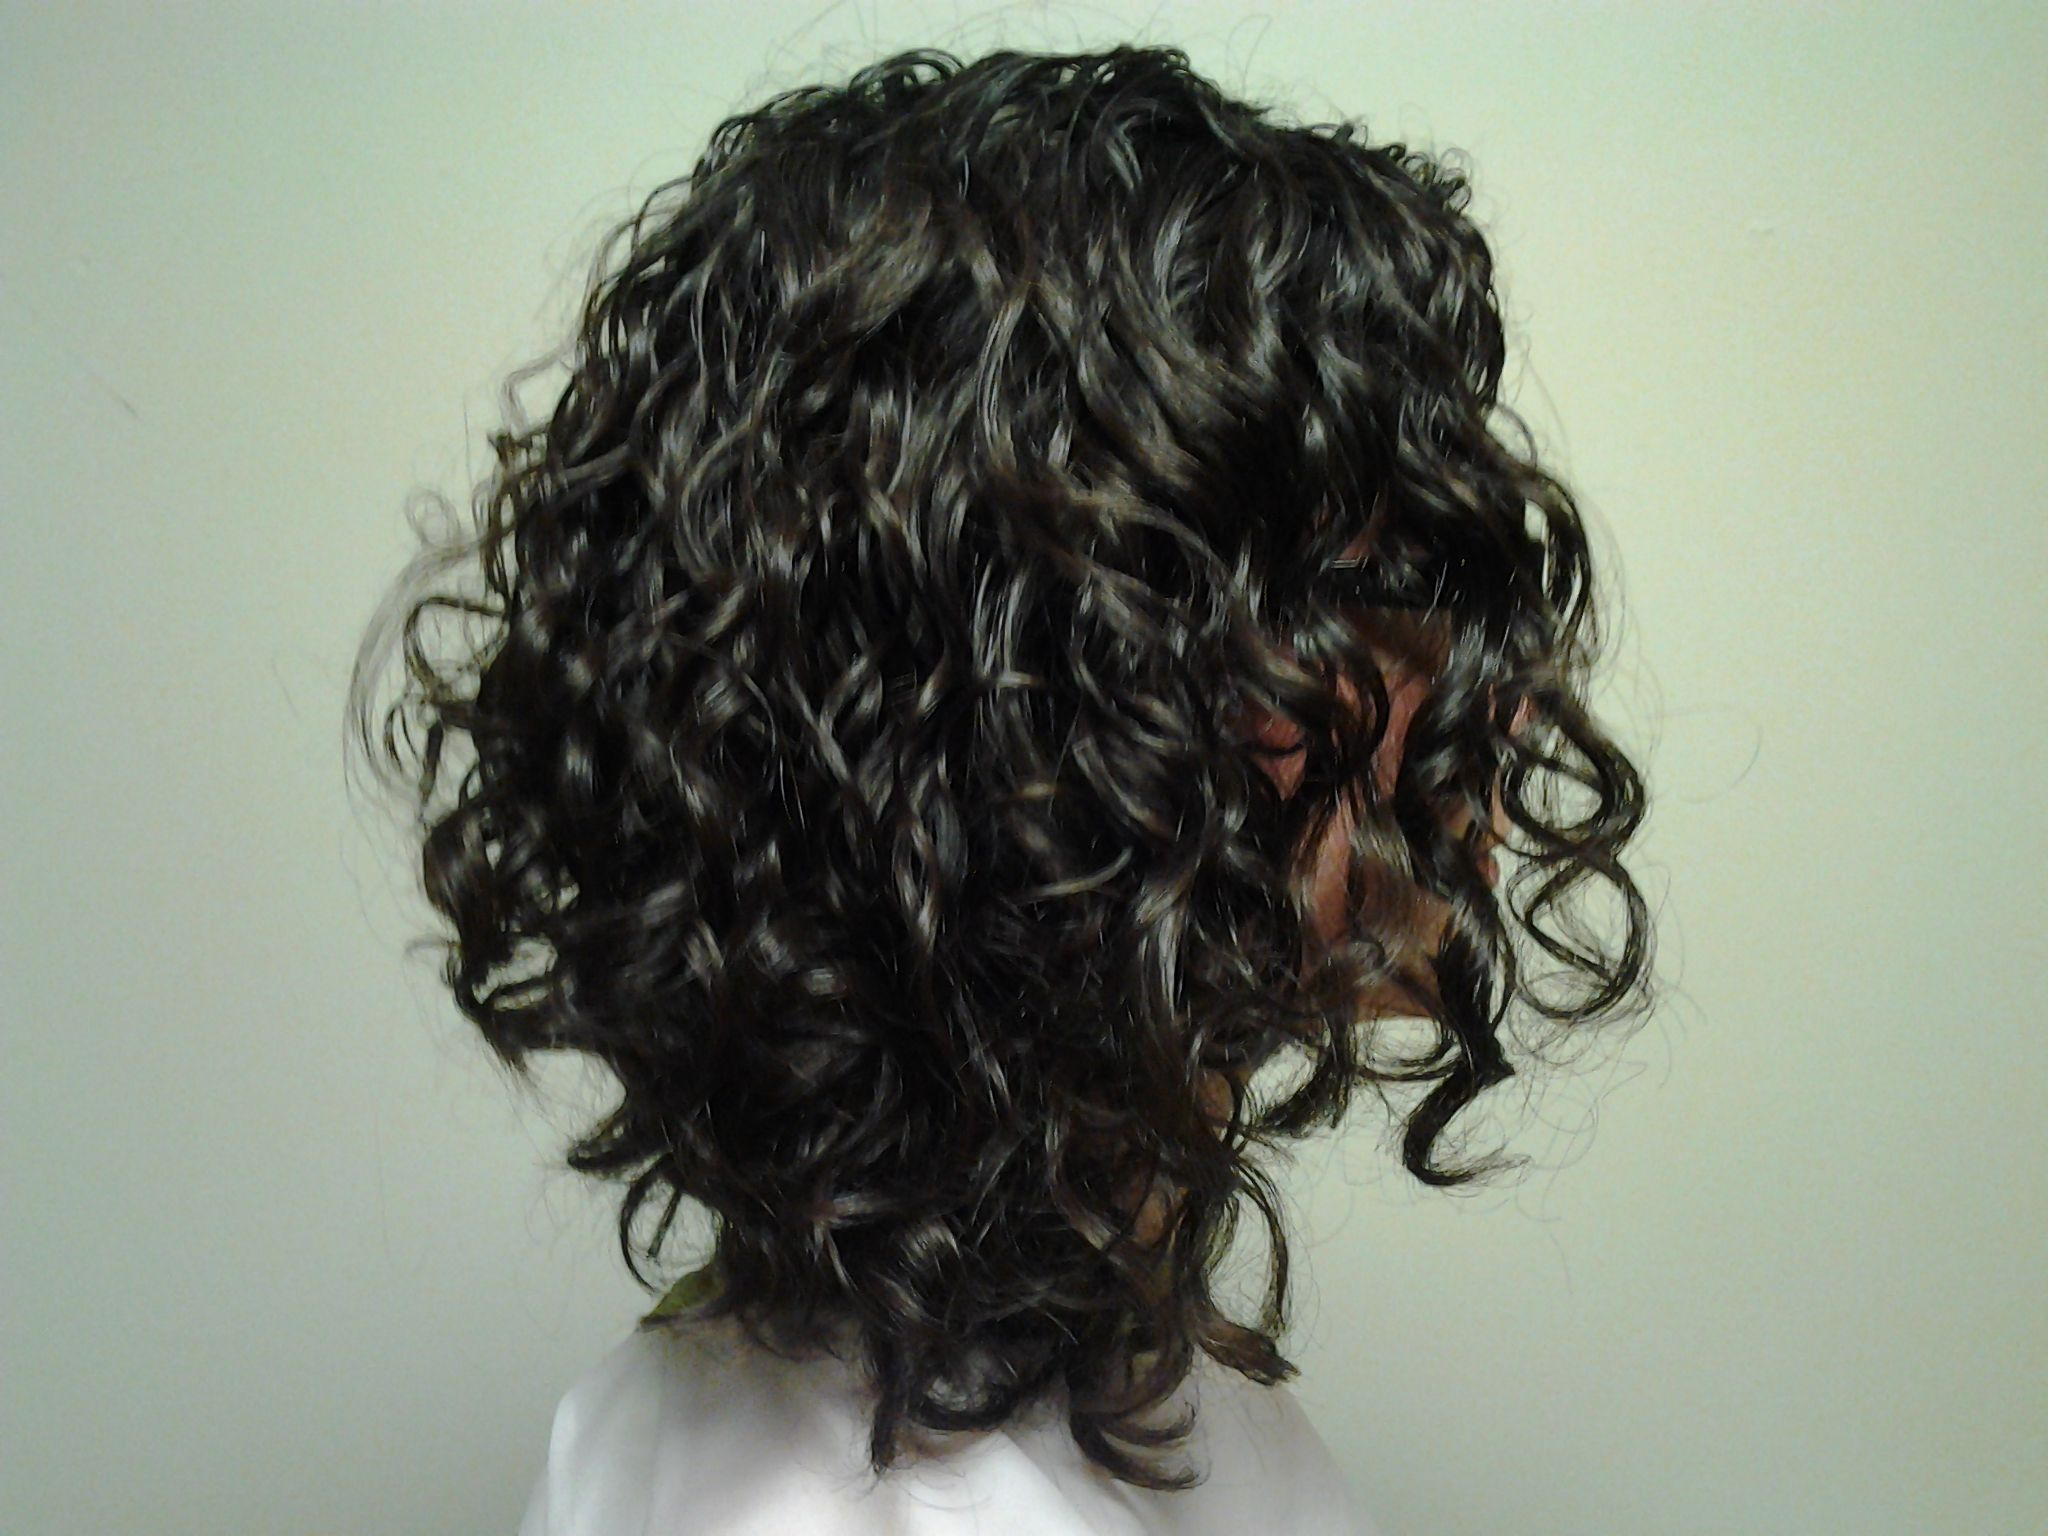 Inverted Naturally Curly Bob Front View Google Search Curly Hair Styles Haircuts For Curly Hair Curly Hair Pictures